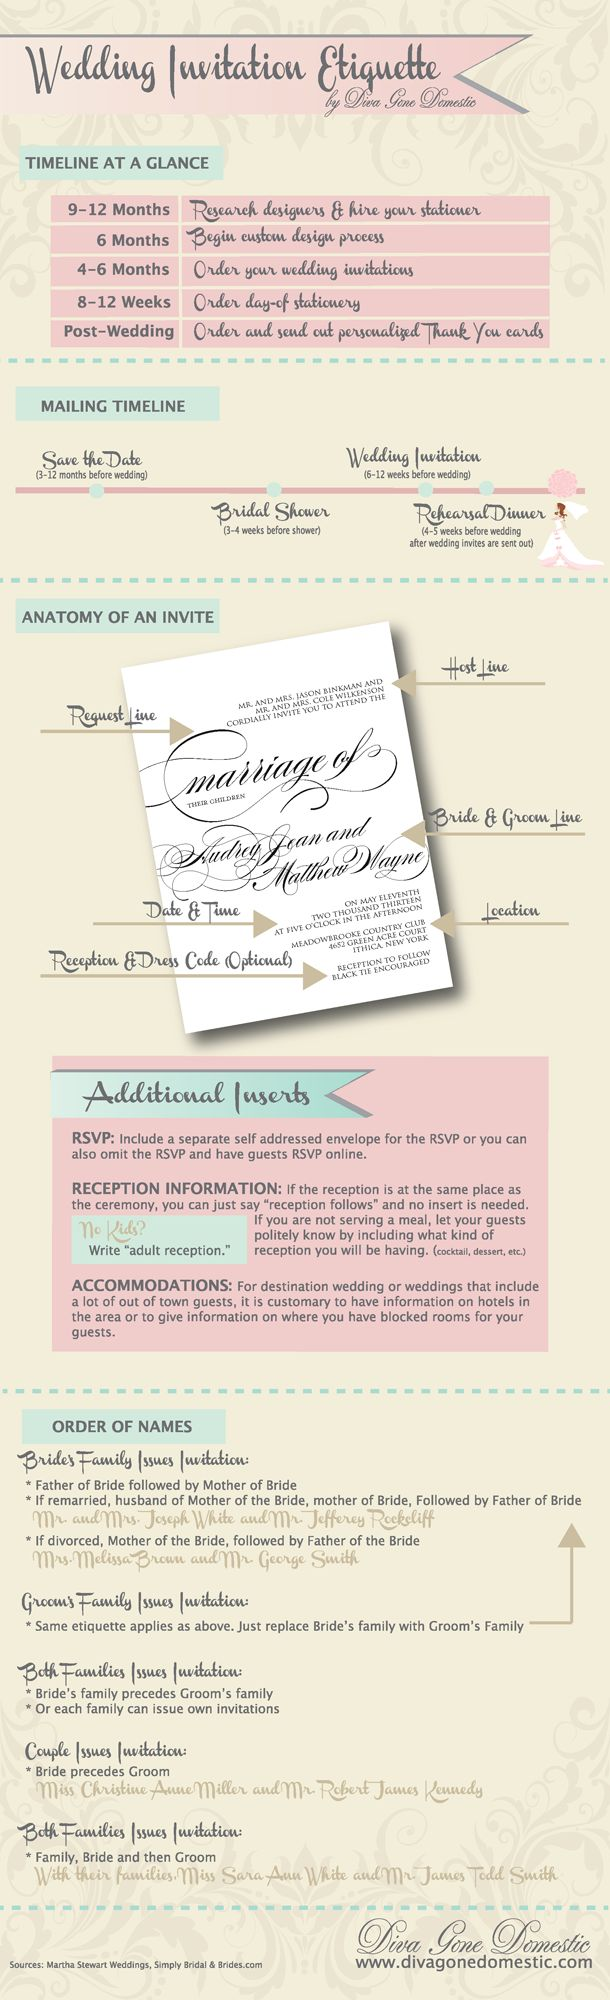 More couples are seeking for ways to break the ties, moving away from traditional wedding invitations. The wording used on the invitation are largely dependent on who the wedding host is and where the wedding will be held. No matter how formal or casual your invitation is intended to be, basic information related to the